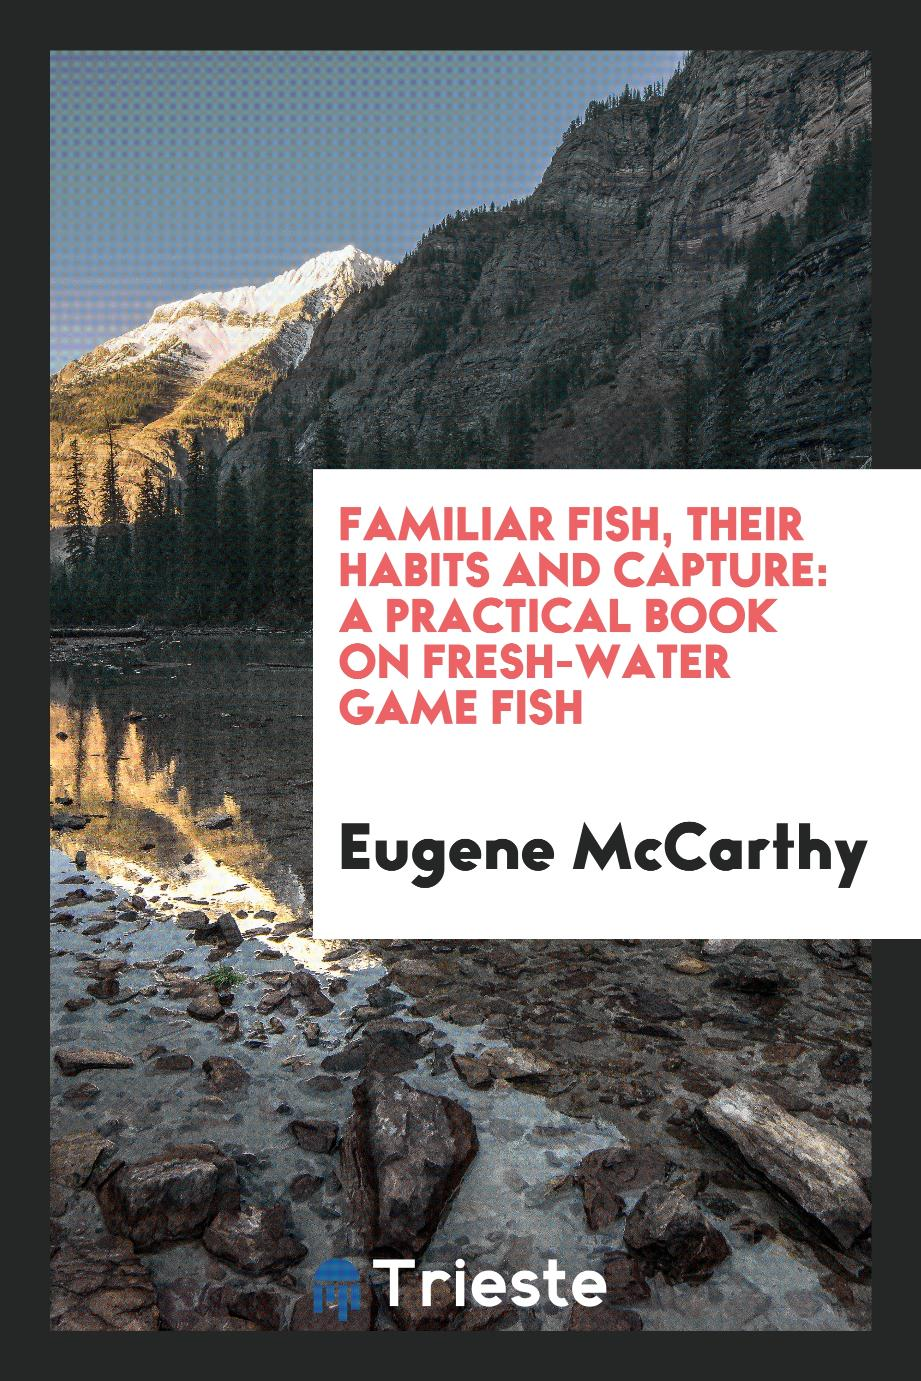 Familiar fish, their habits and capture: a practical book on fresh-water game fish